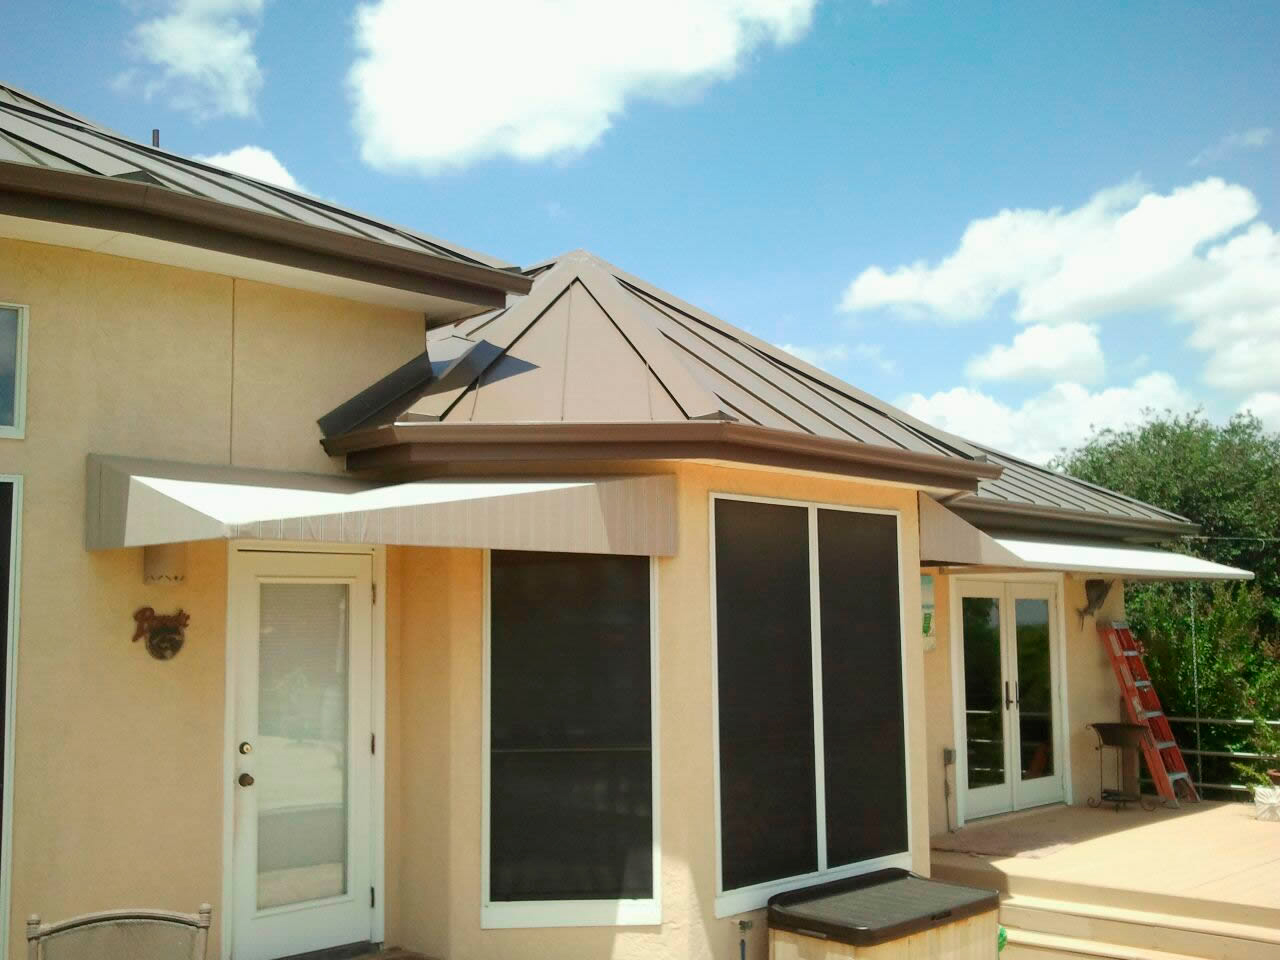 in co residential sc awnings fabric awning door greenville